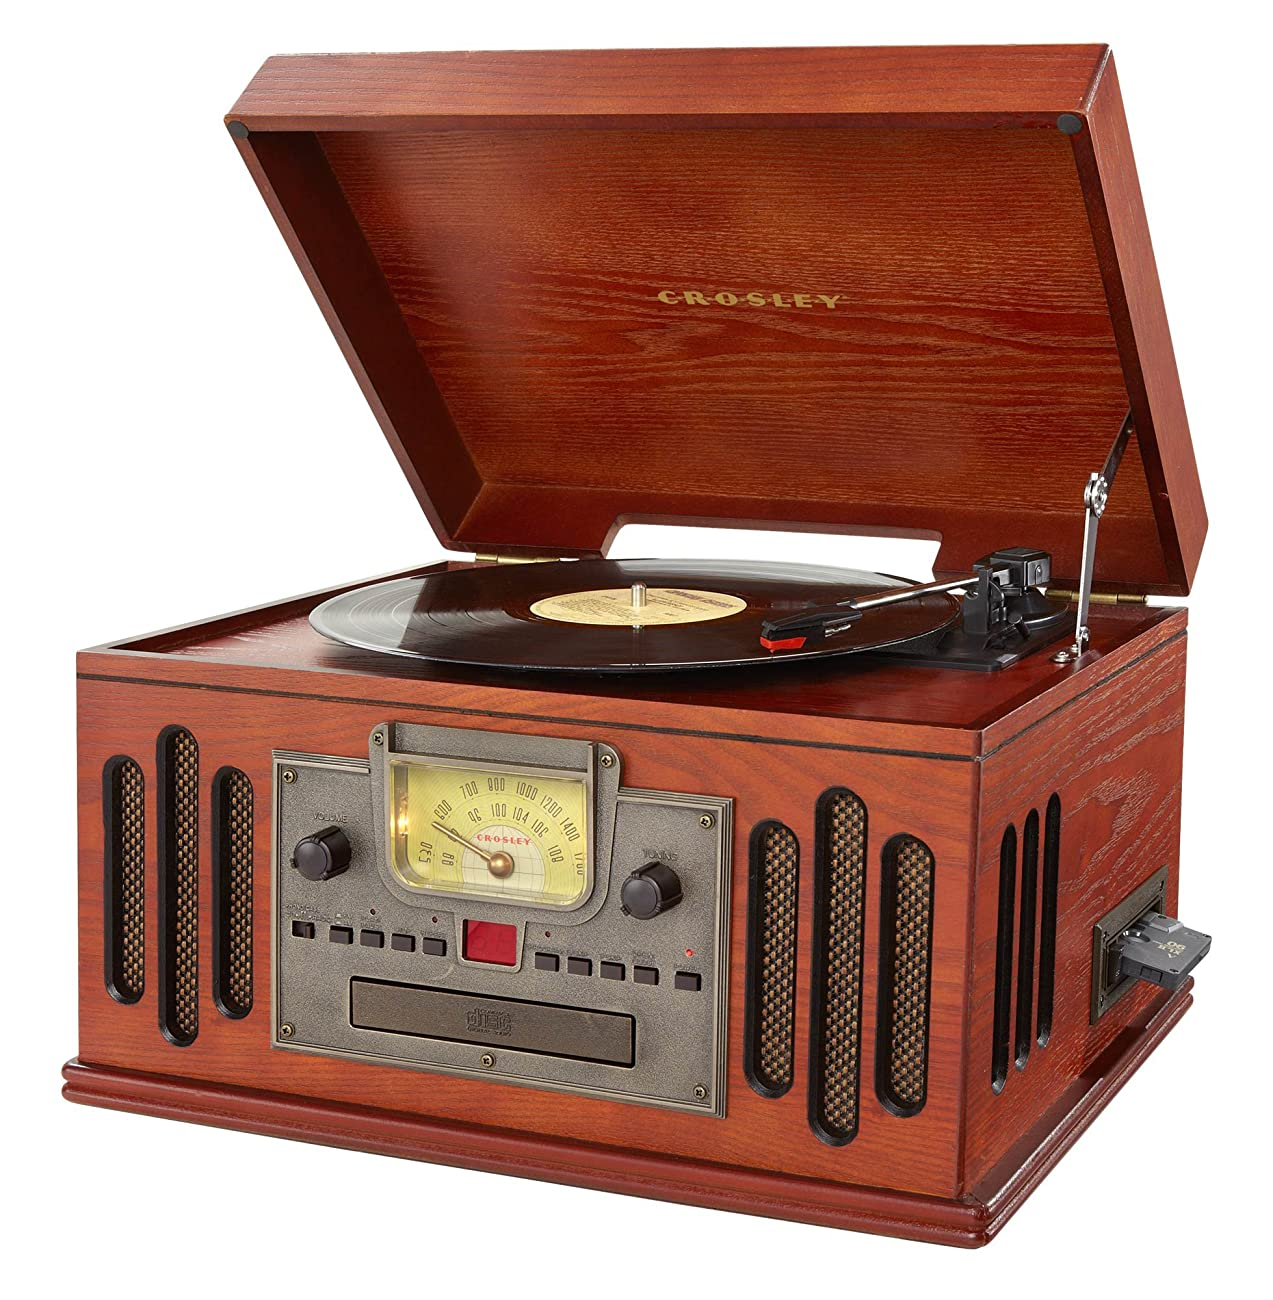 Crosley CR704C-PA Musician Turntable with Radio, CD Player, Cassette and Aux-In, Paprika 2